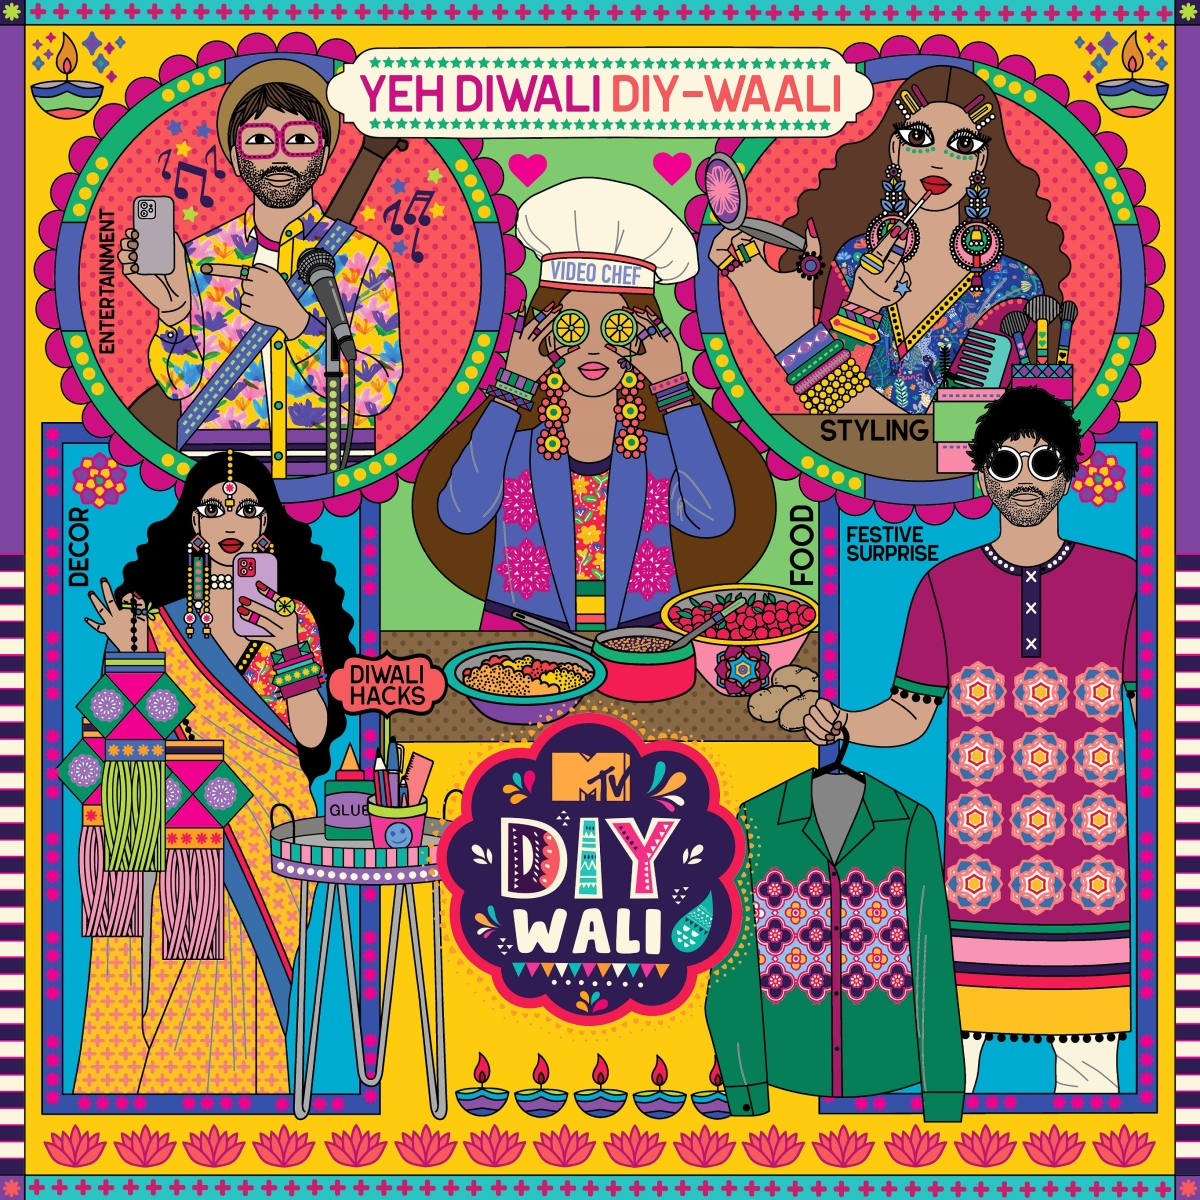 Have a #DIYwali Diwali this year with MTV India